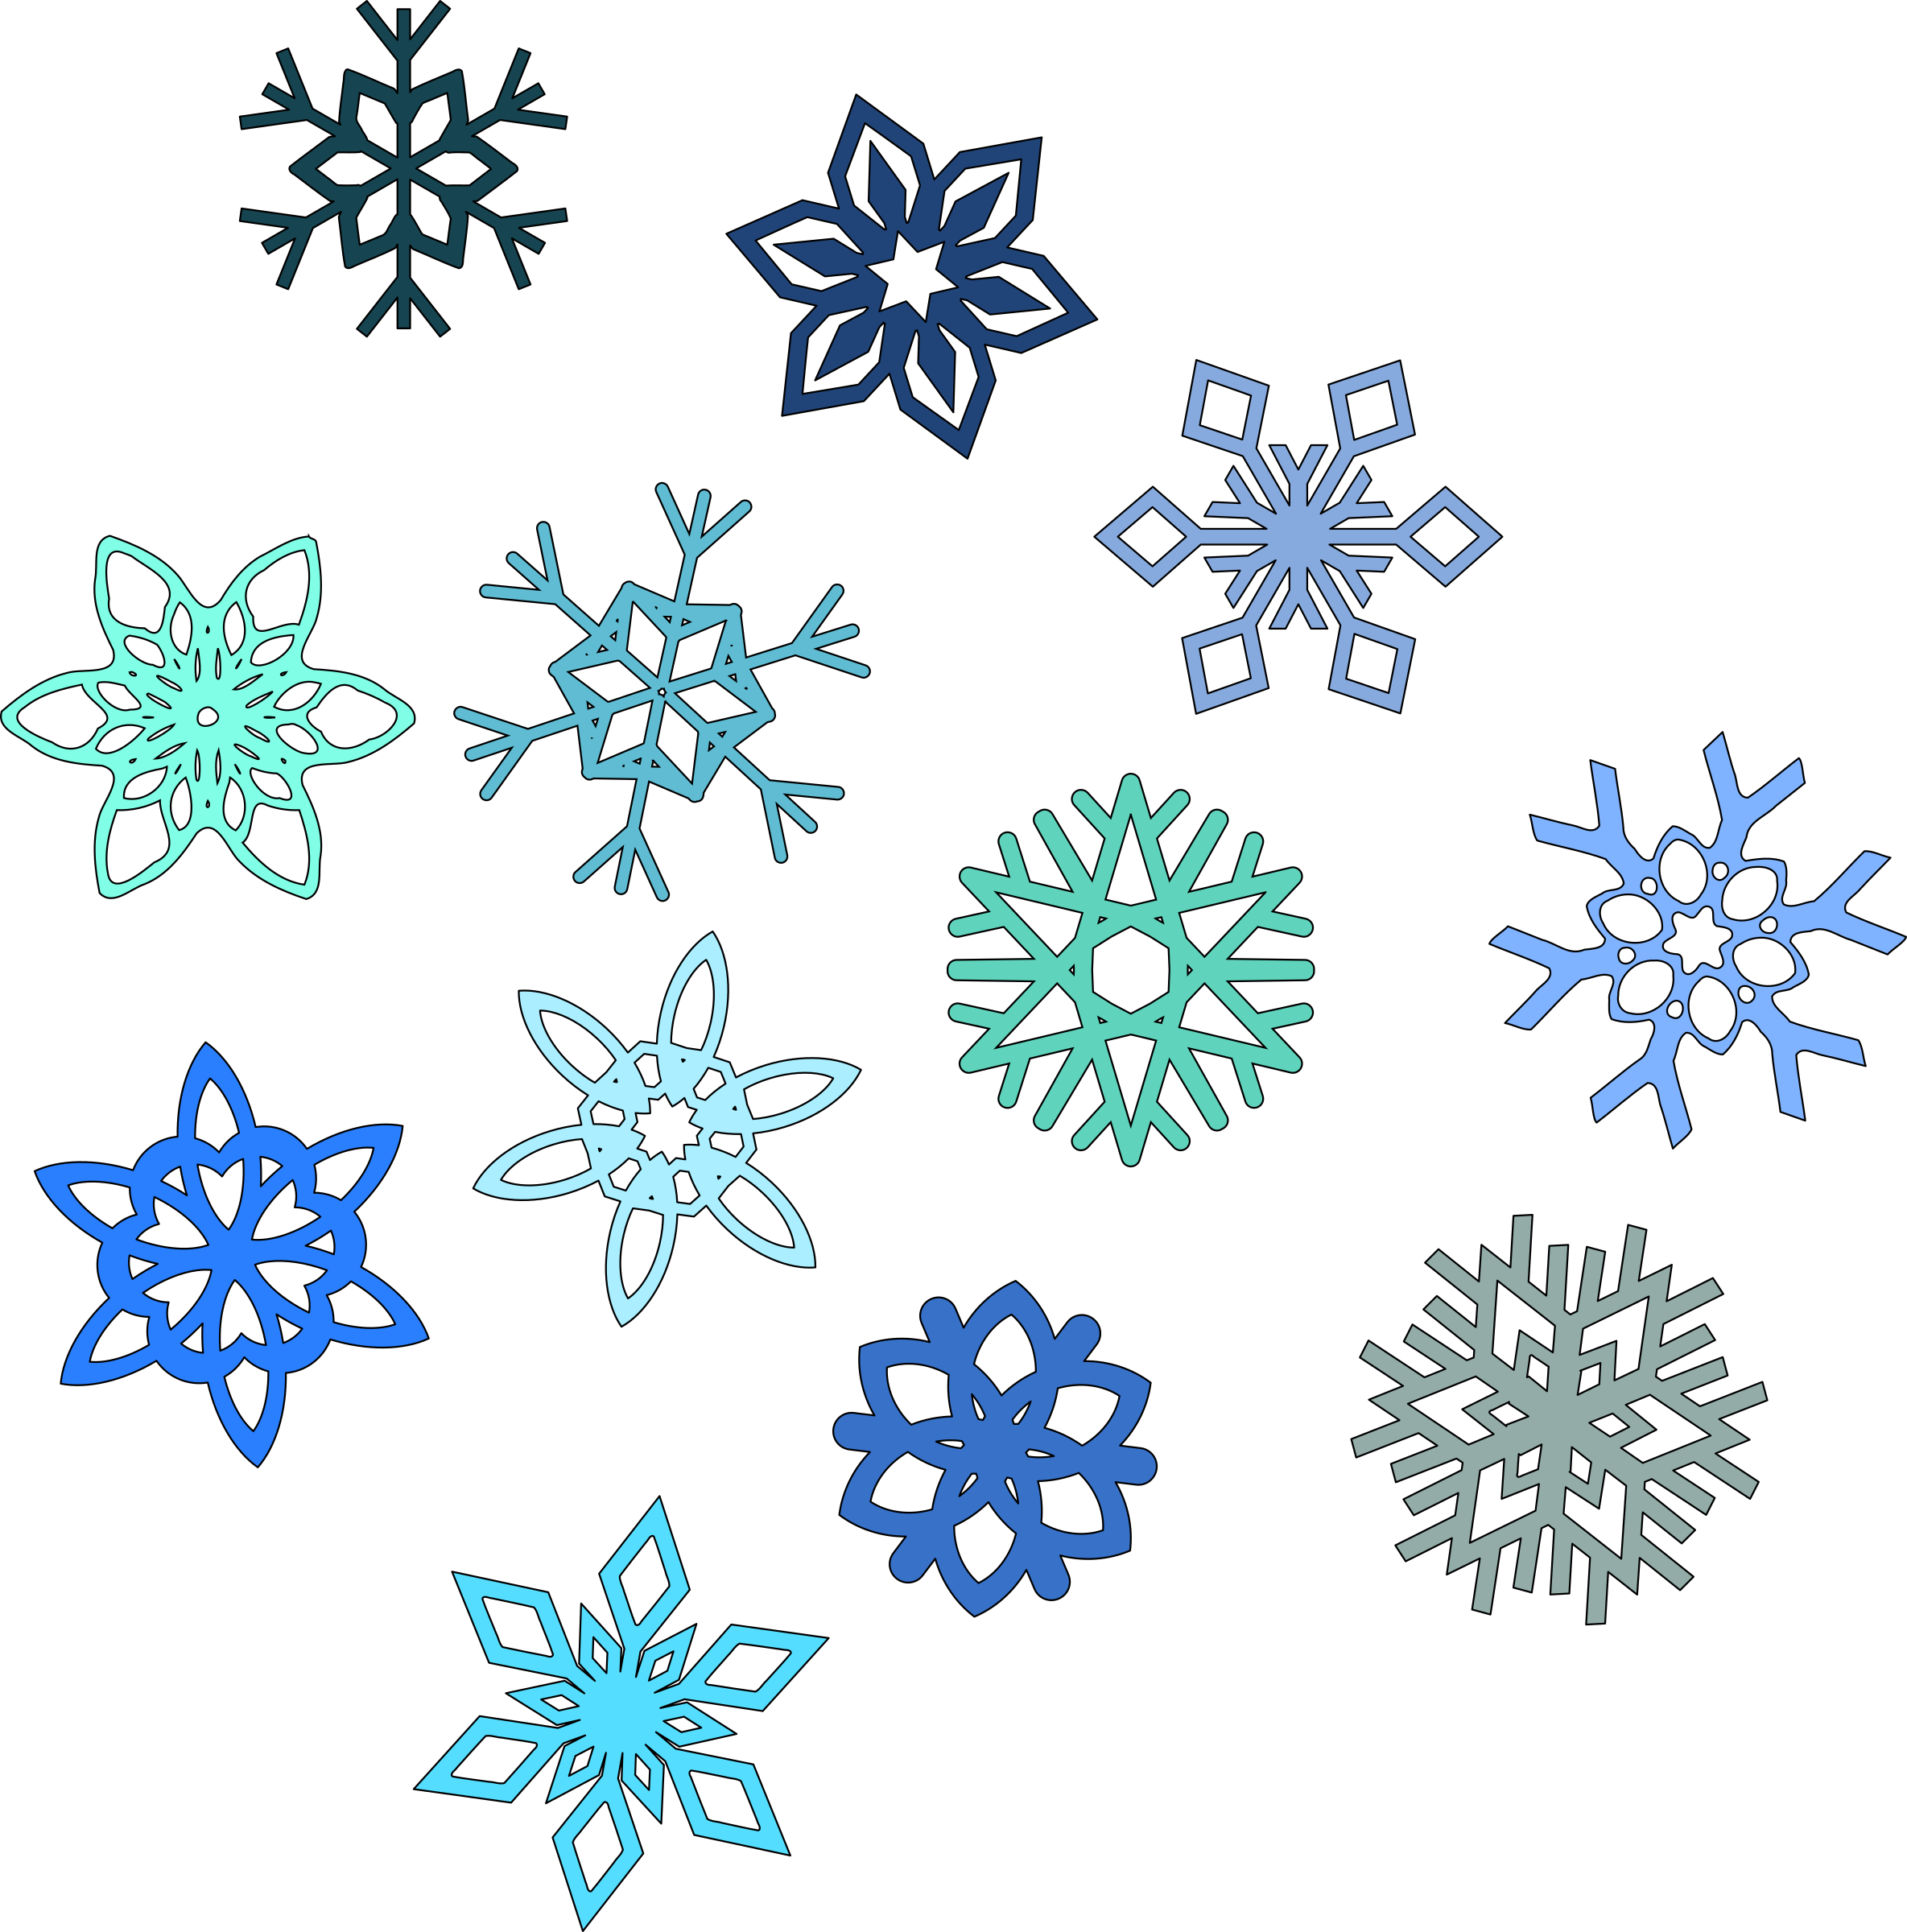 Crystal snowflake clipart graphic transparent library Keeping a Snow Journal | Pinterest | Scrapbooking graphic transparent library